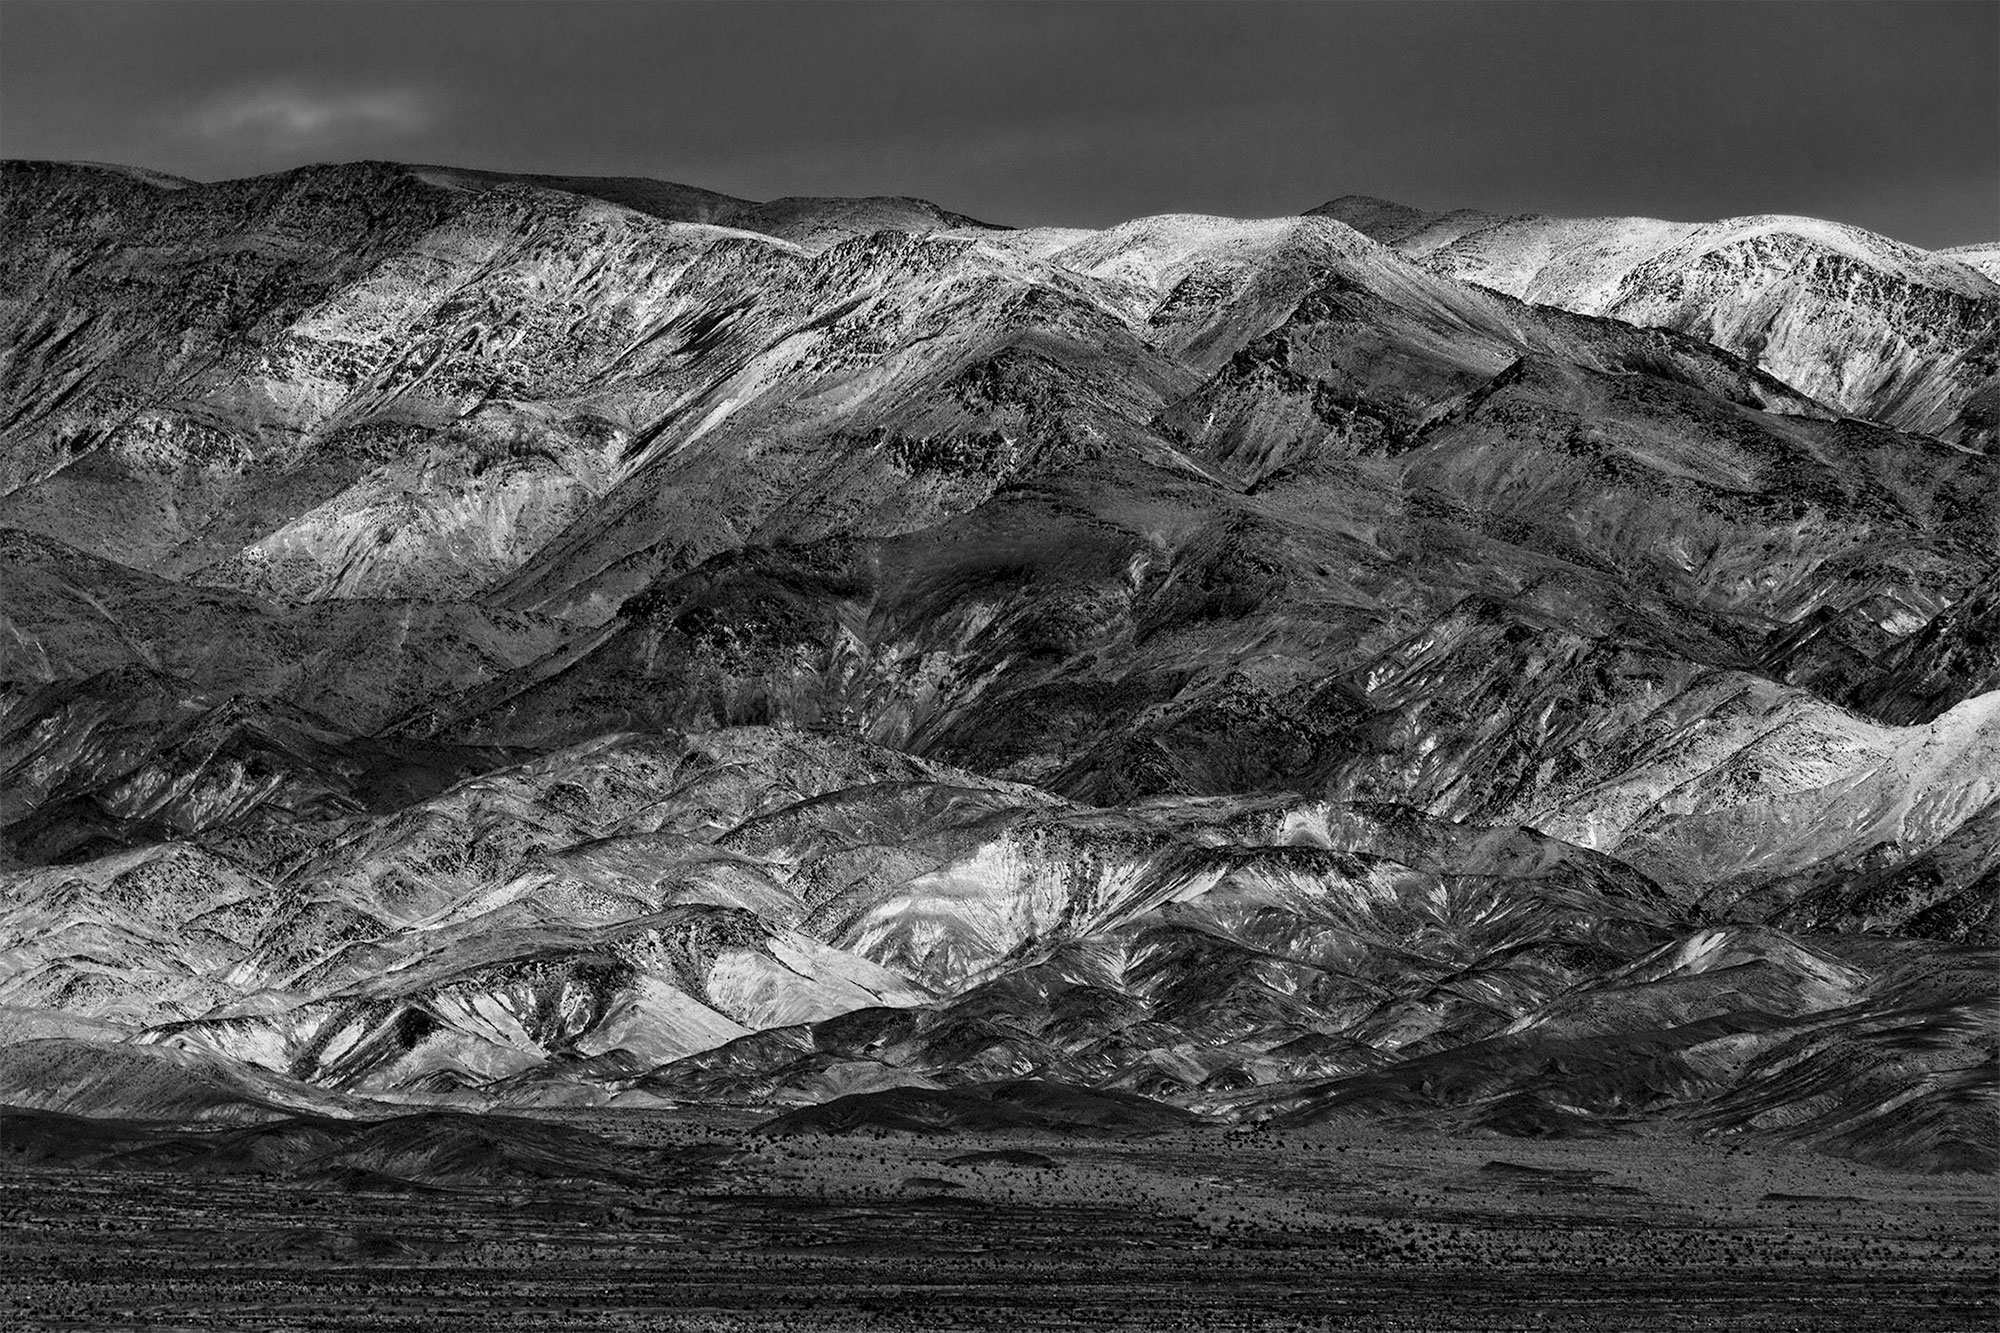 Black and White landscapes of Death Valley-Grapevine